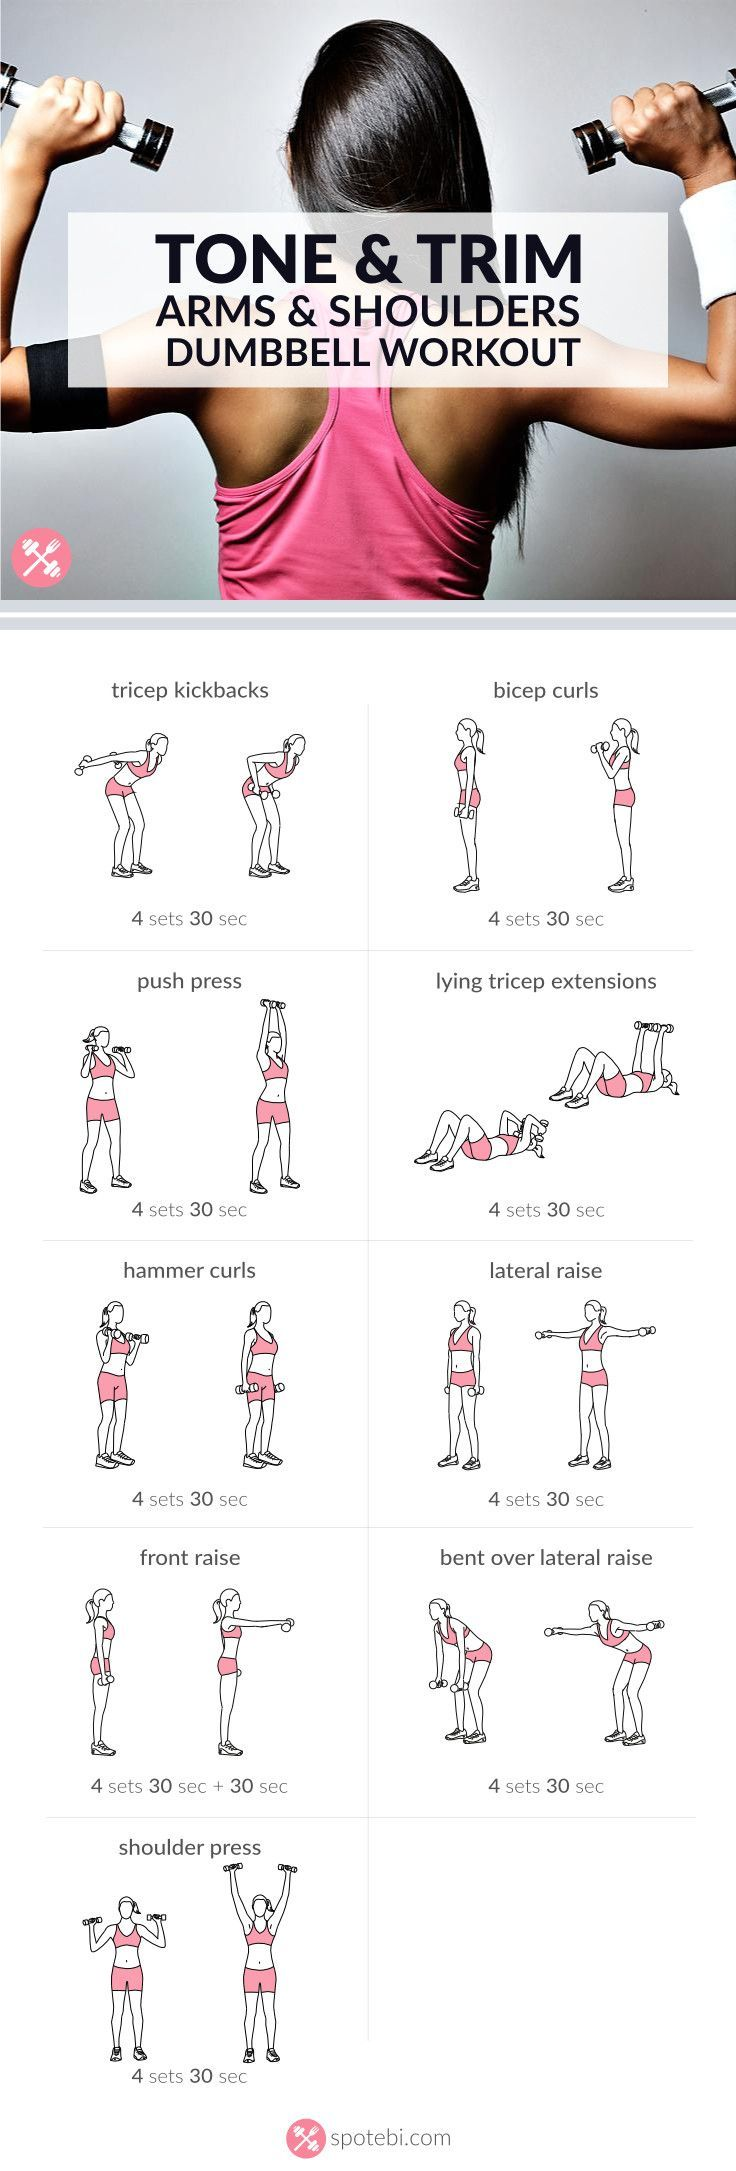 Arm & Shoulders Dumbbell Workout. Each exercises for 30 sec or complete 15-20 repetitions. Rest 30-60 sec, repeat circuit 4 times. Total of 20 mins get fit for free, getting in shape